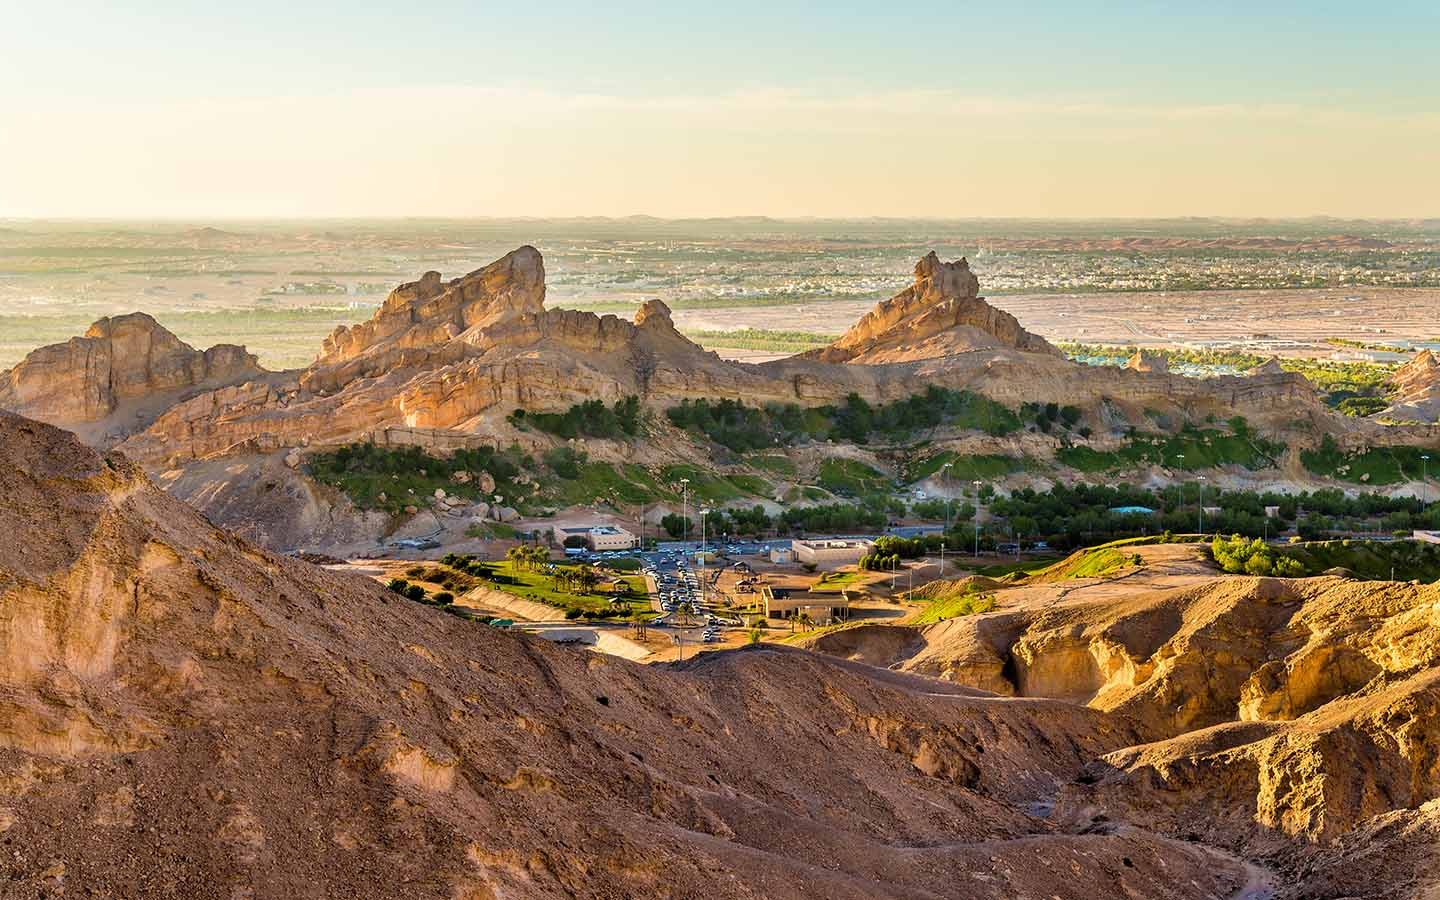 View from Jebel Hafeet, Al Ain